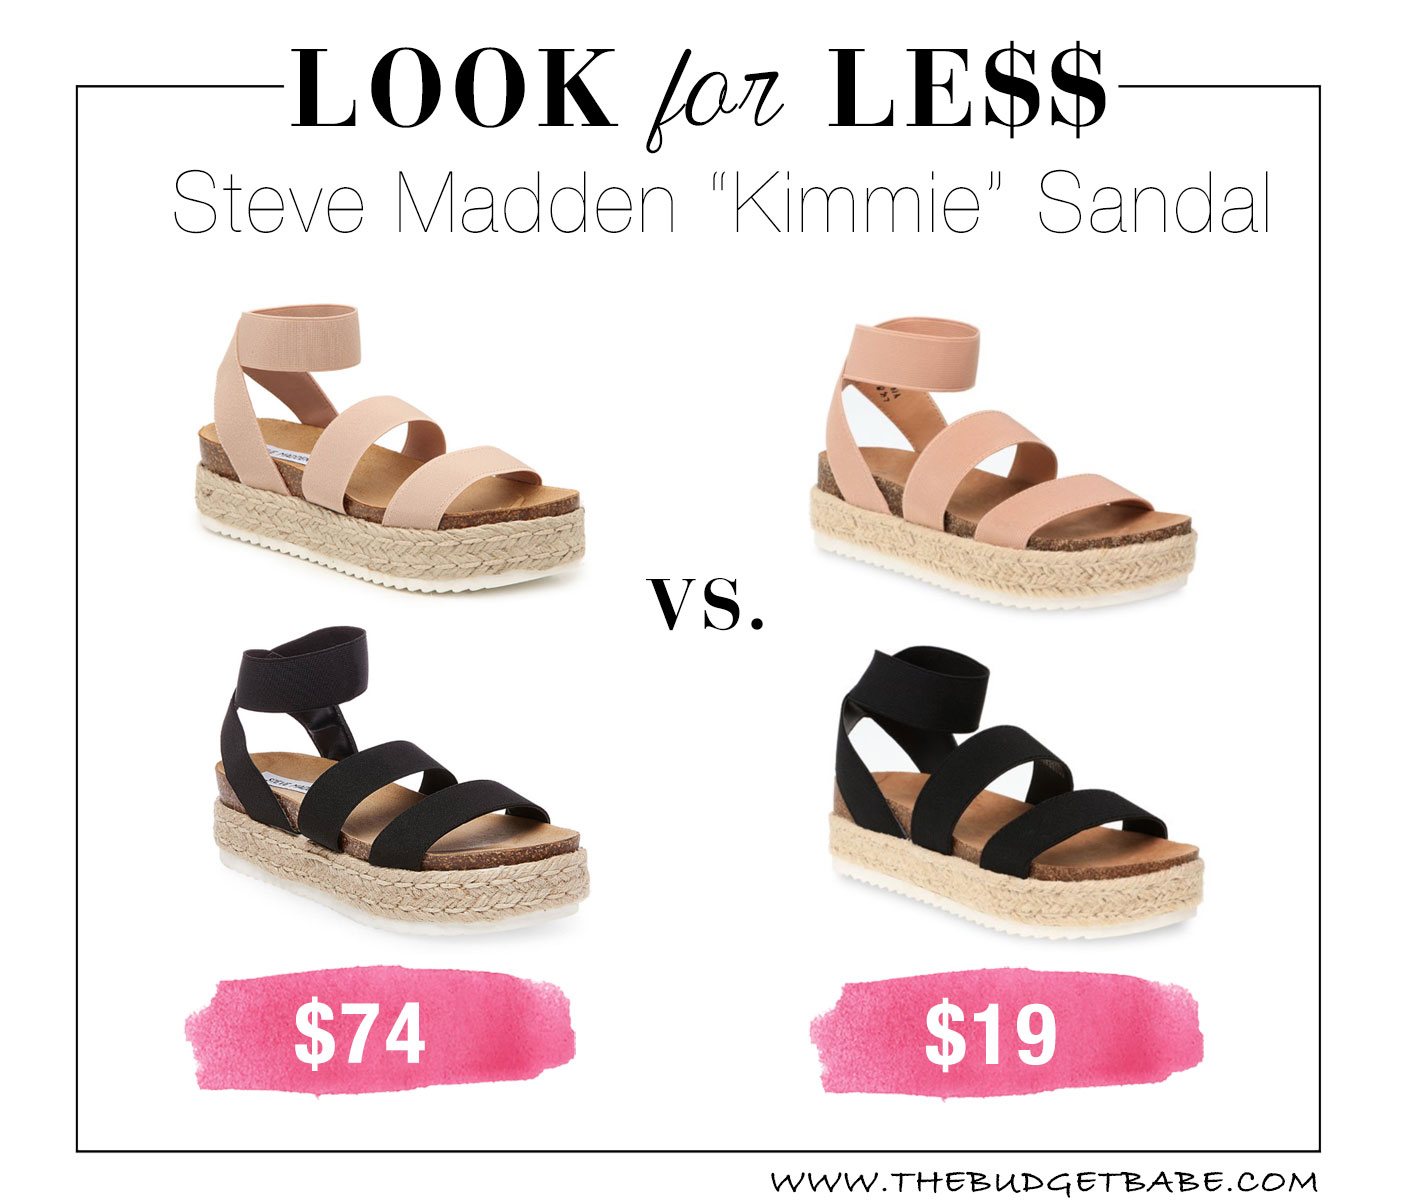 Steve Madden 'Kimmie' dupe sandals at Walmart